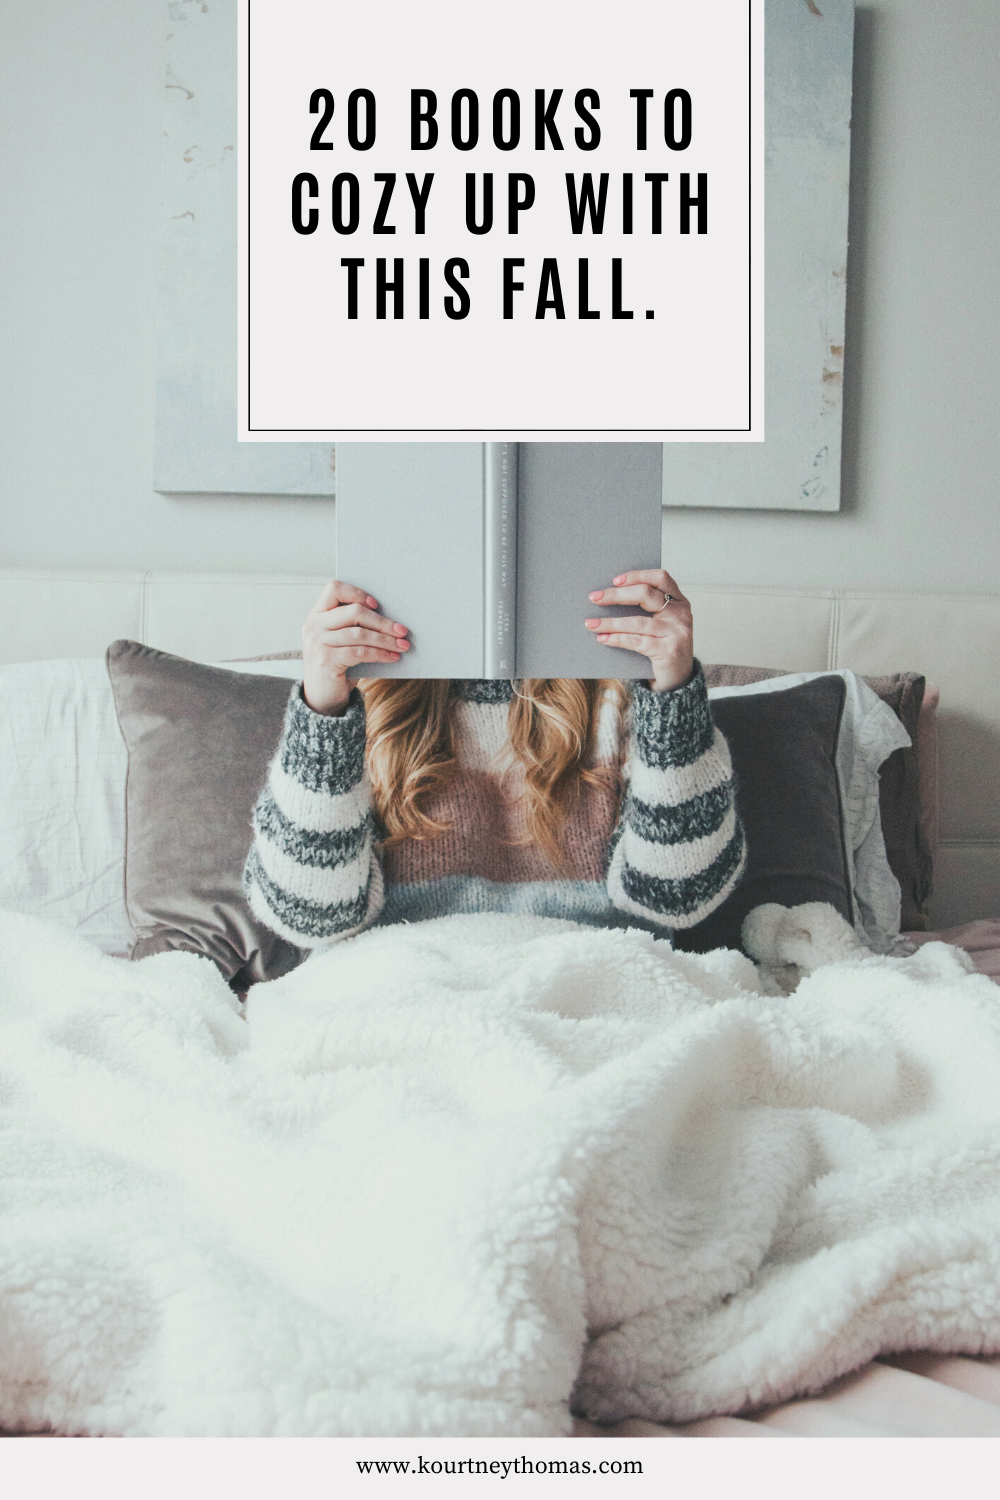 20 books to cozy up with this fall | kourtney thomas fitness life coach